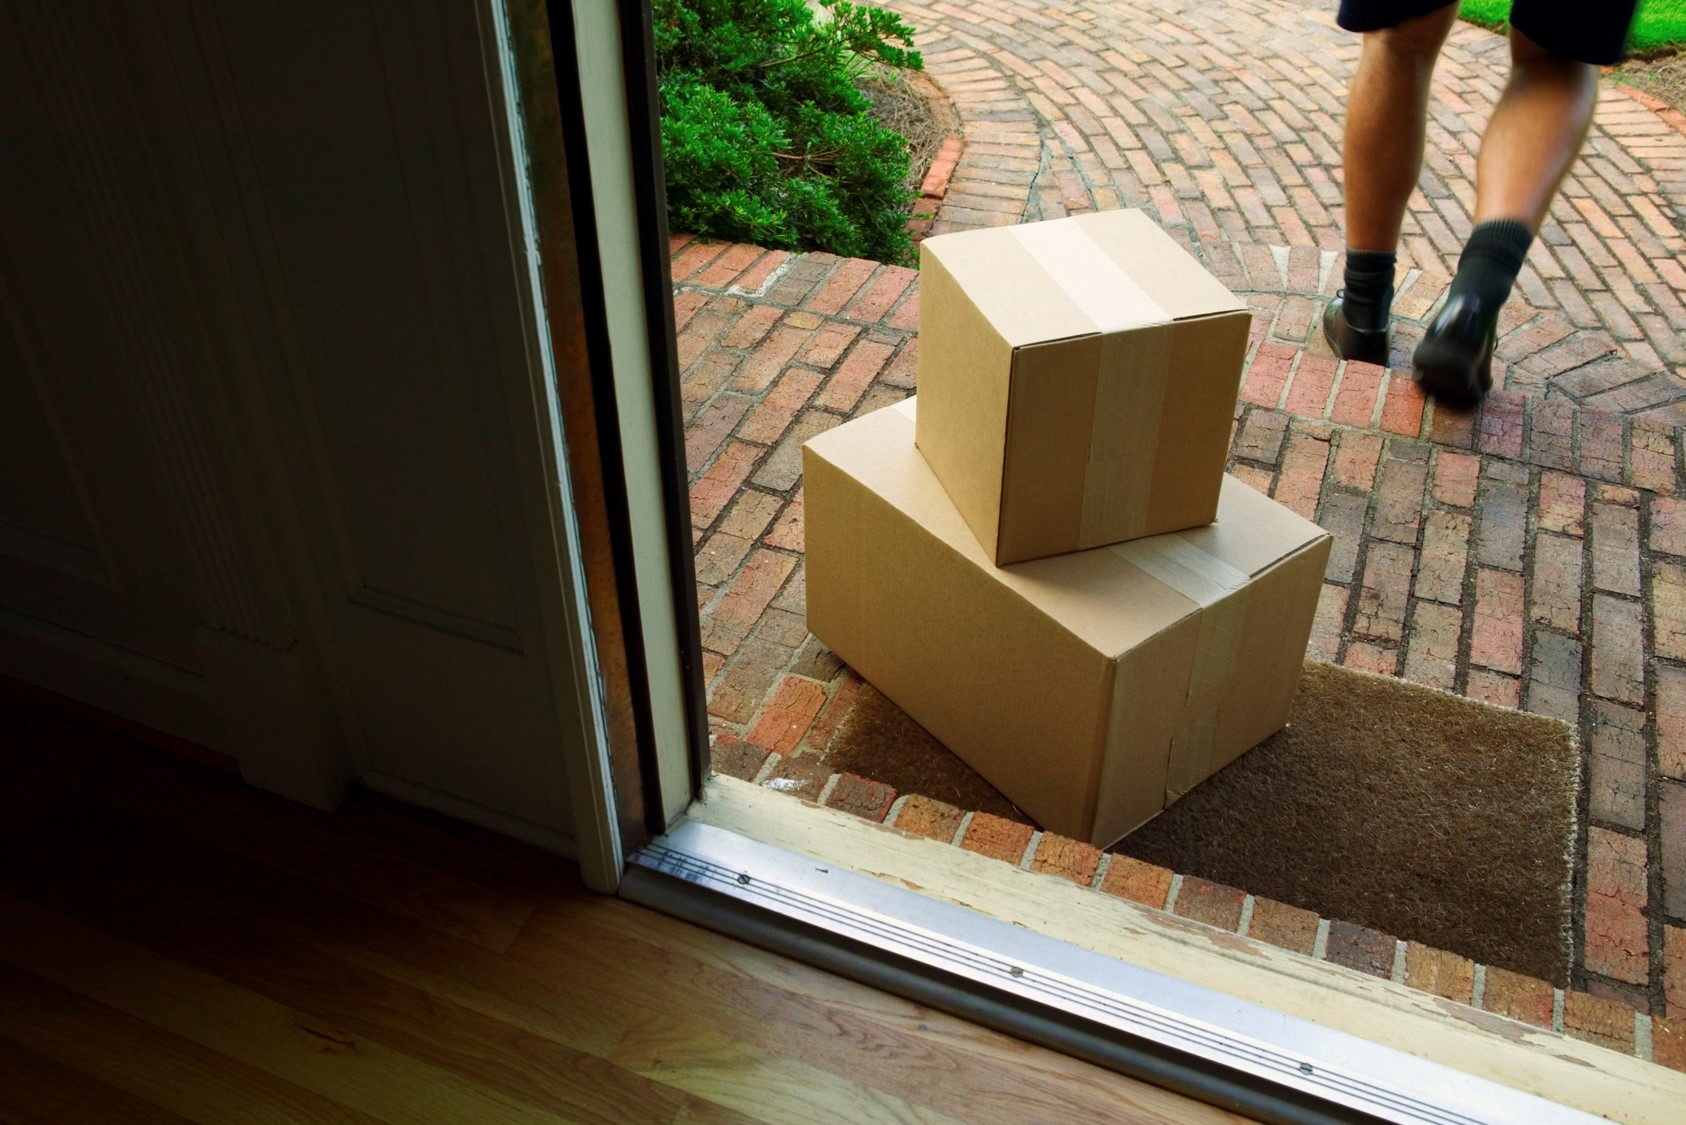 Amazon Prime Deliveries